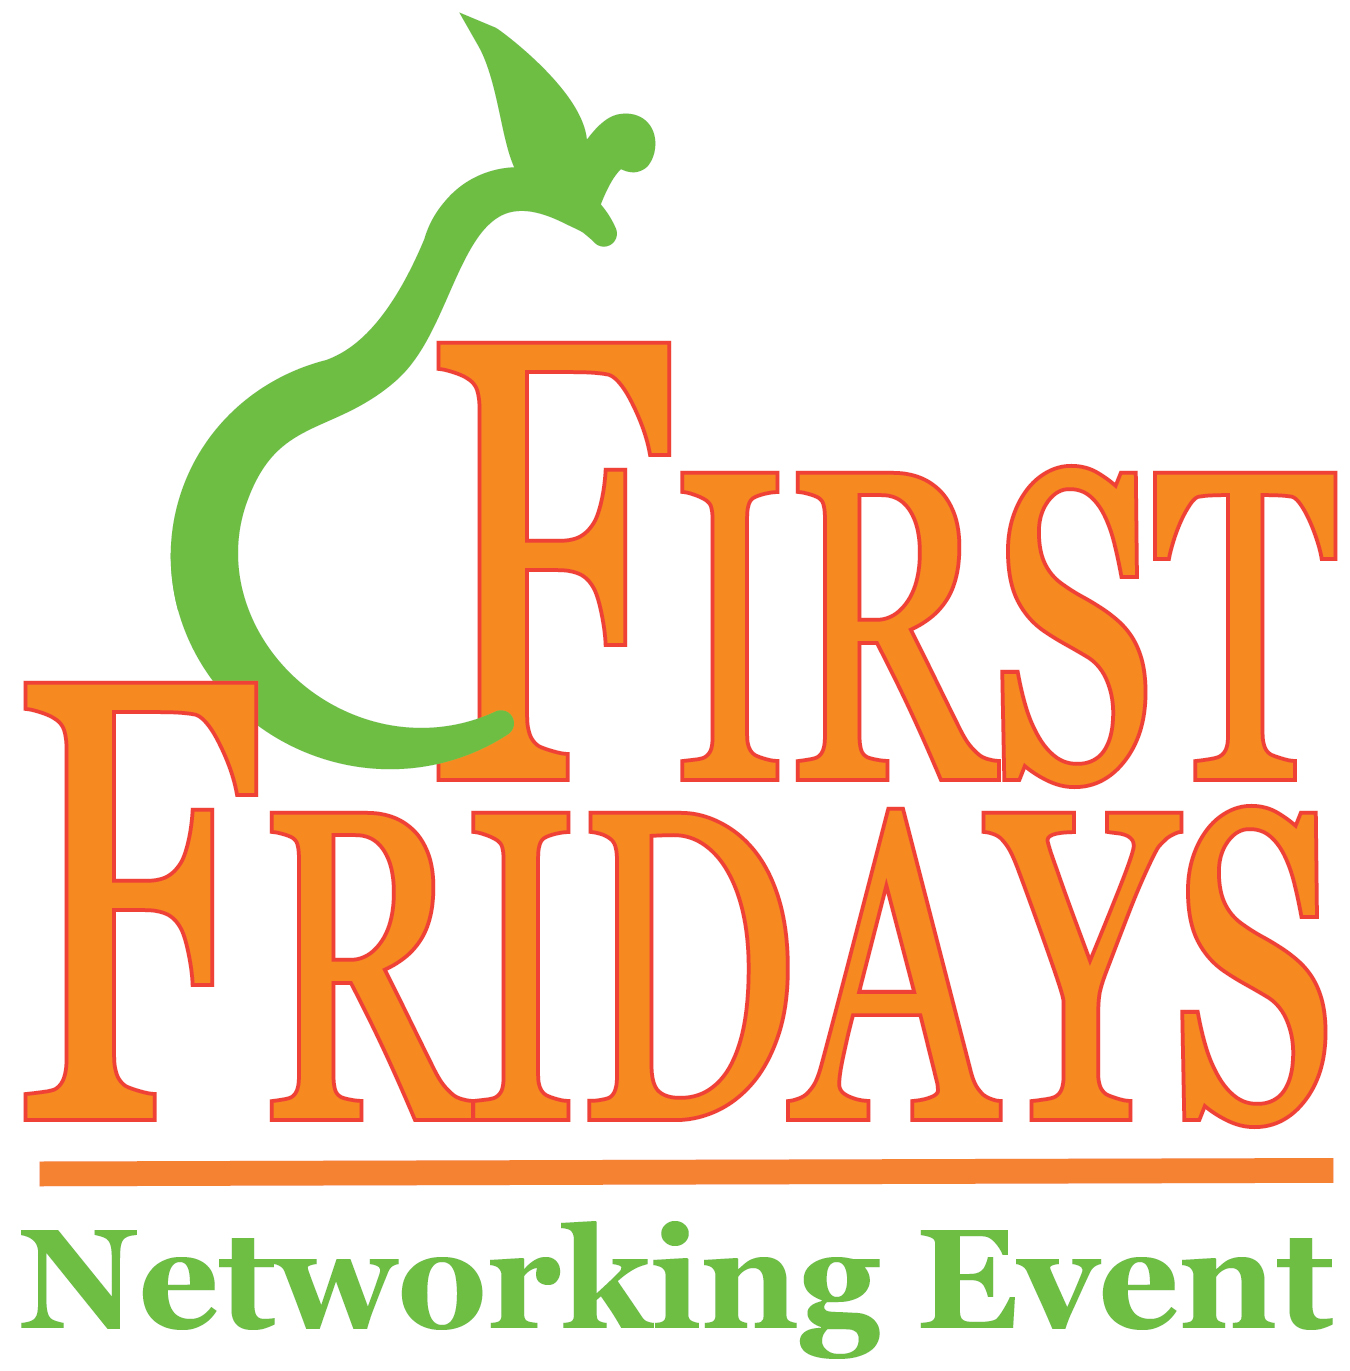 CHAMBER First Fridays Networking - Sep 6, 2019 - Pearland